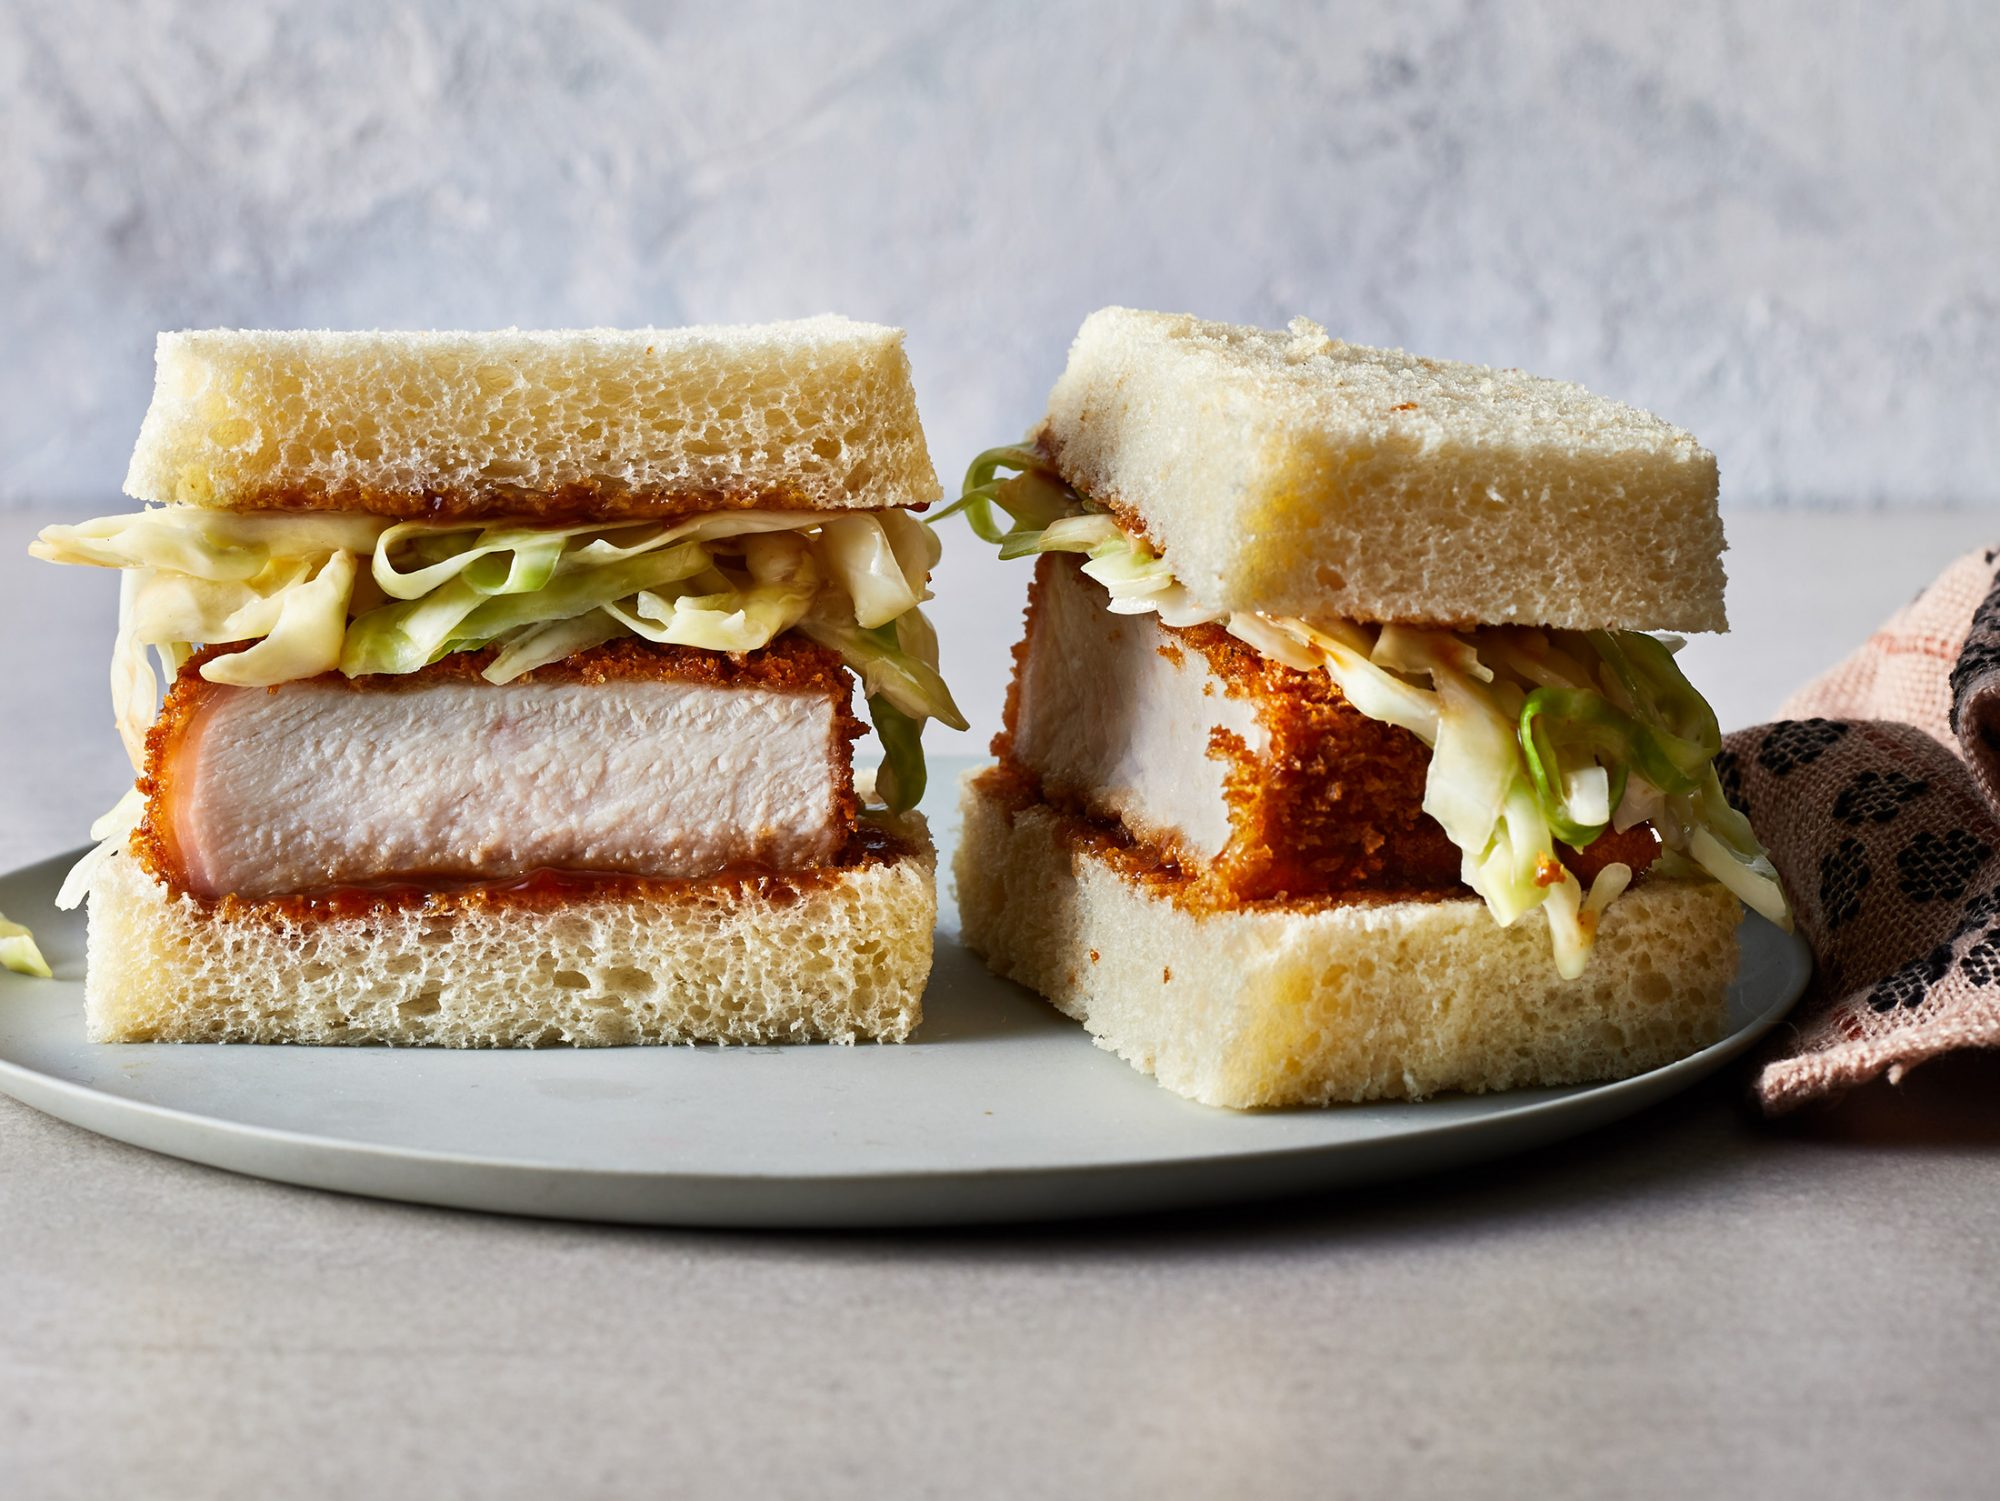 These Sandwiches Are a Simple, Tasty Twist On Your Usual Pork Chop